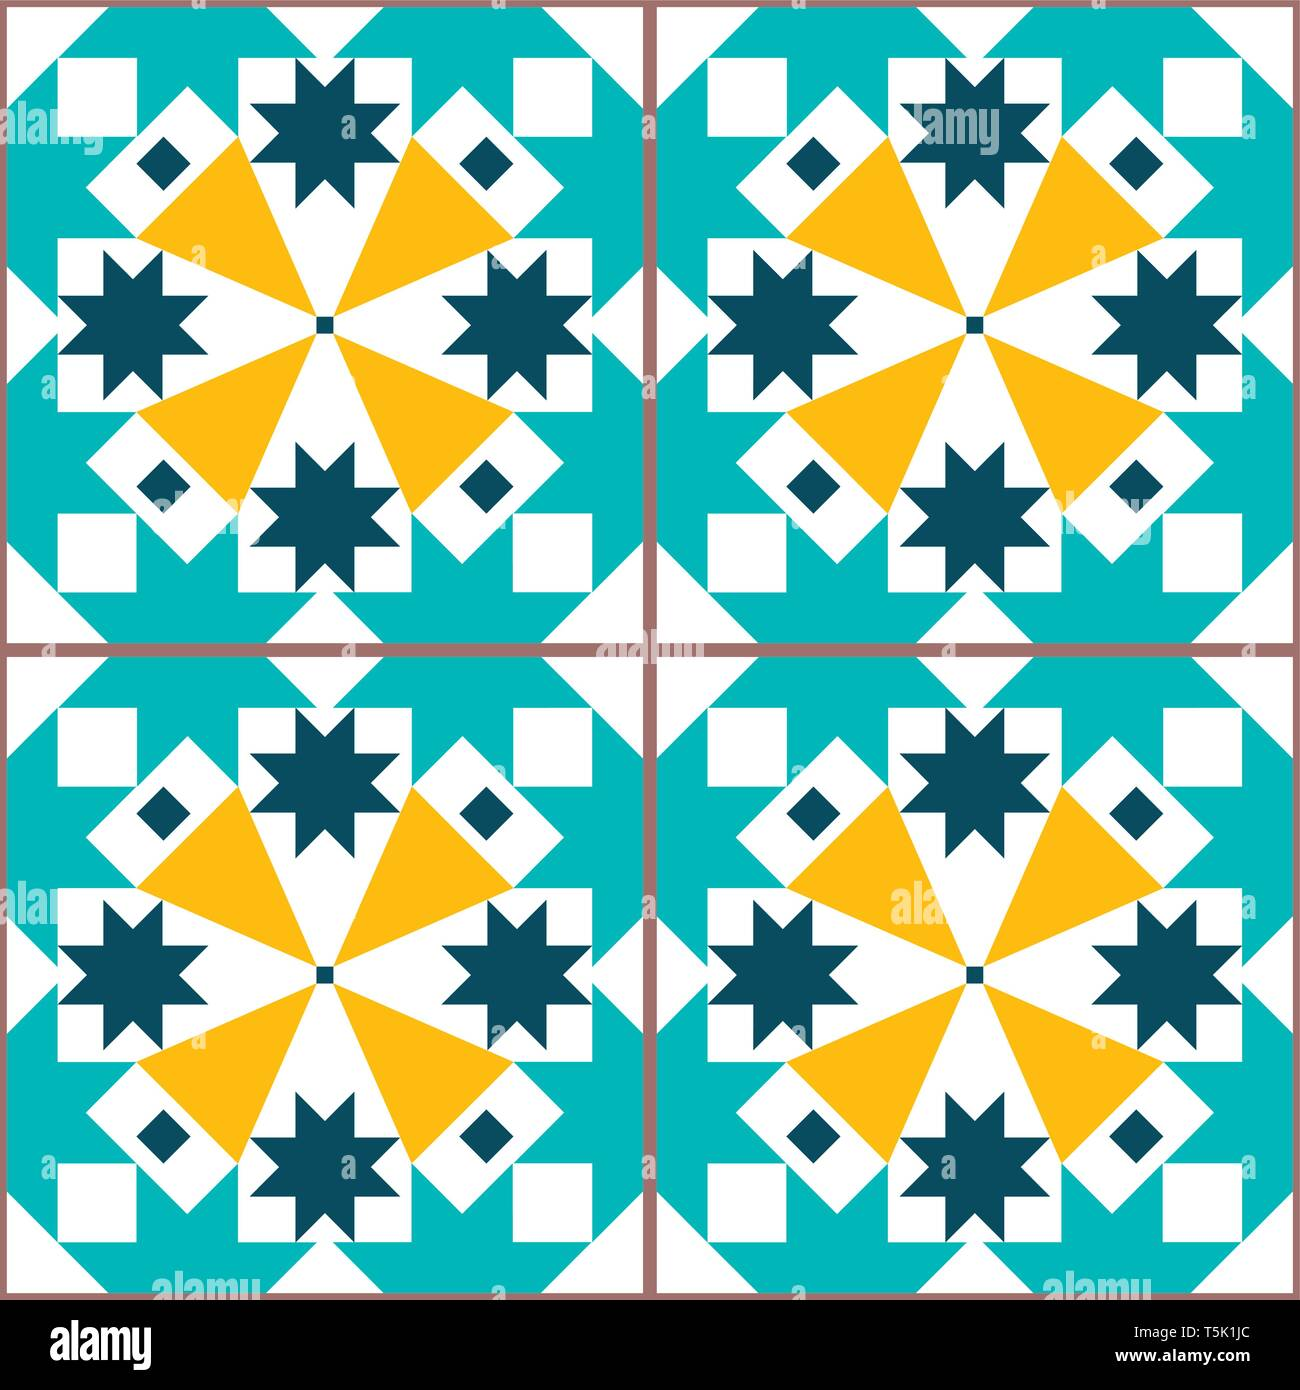 Lisbon geometric vector tiles seamless pattern inspired by Portuguese art, Azulejos style tile background - Stock Vector